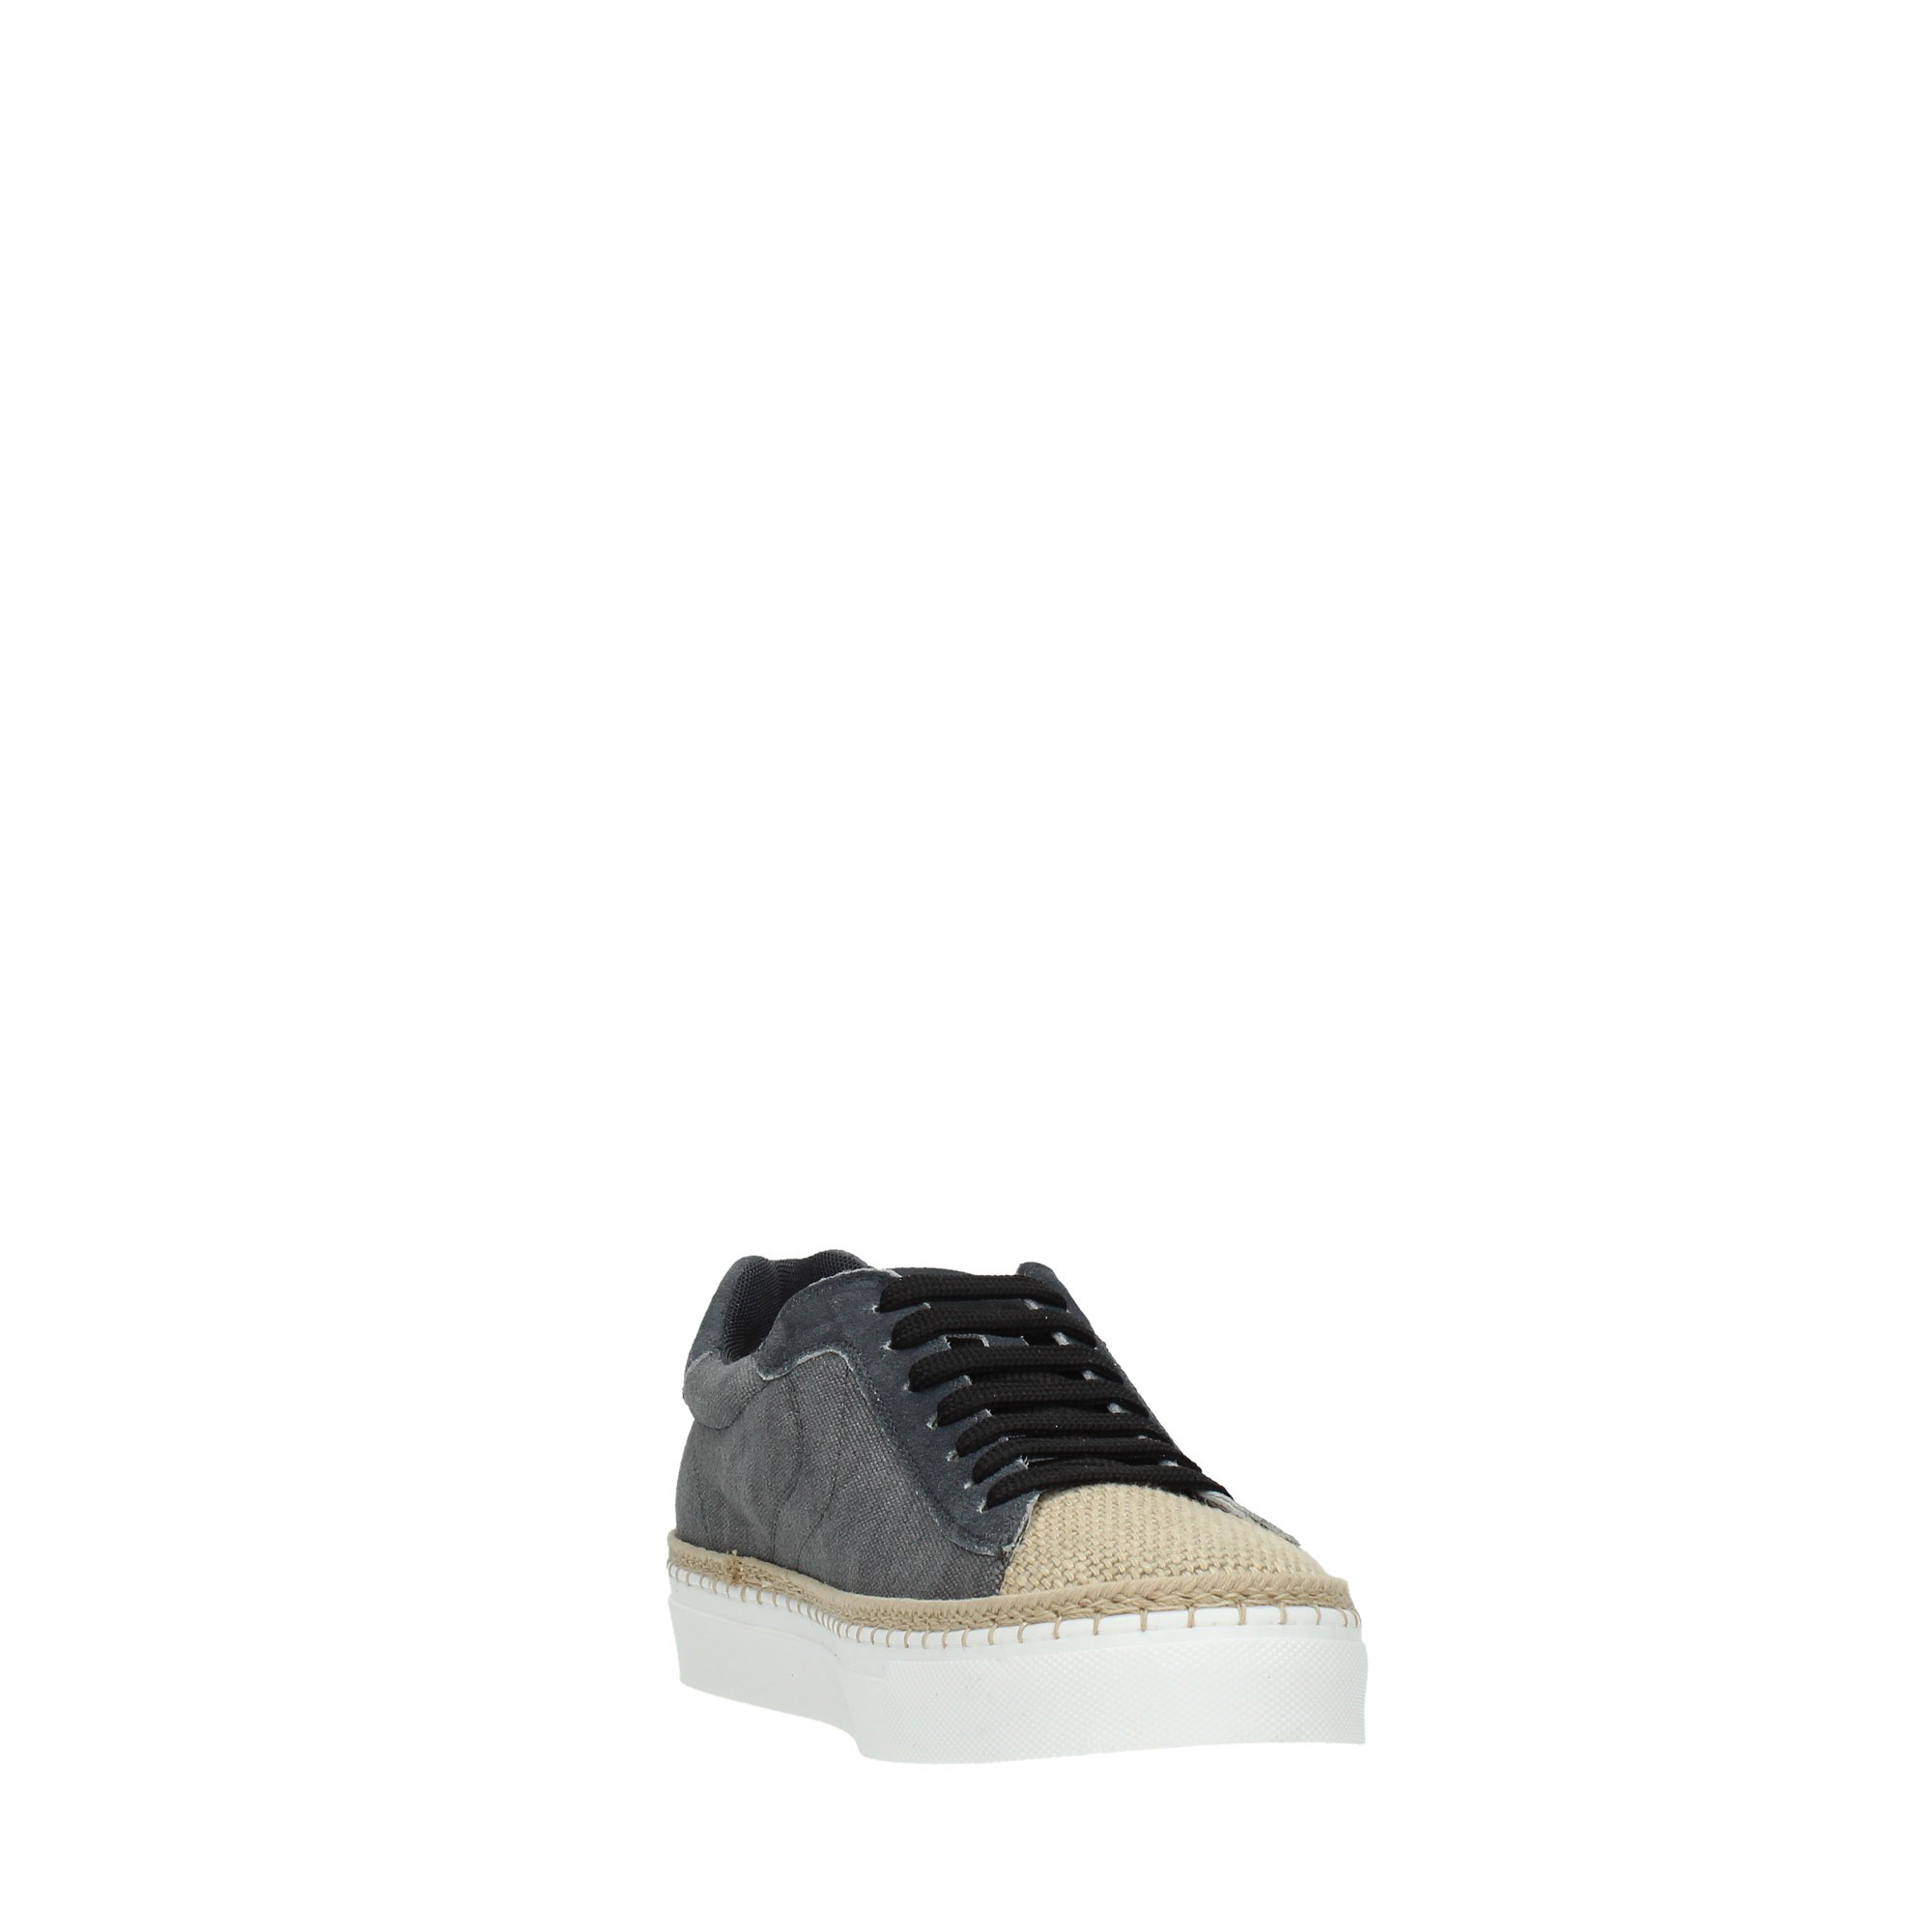 Voile Blanche Shoes Man Sneakers Black AMALFI